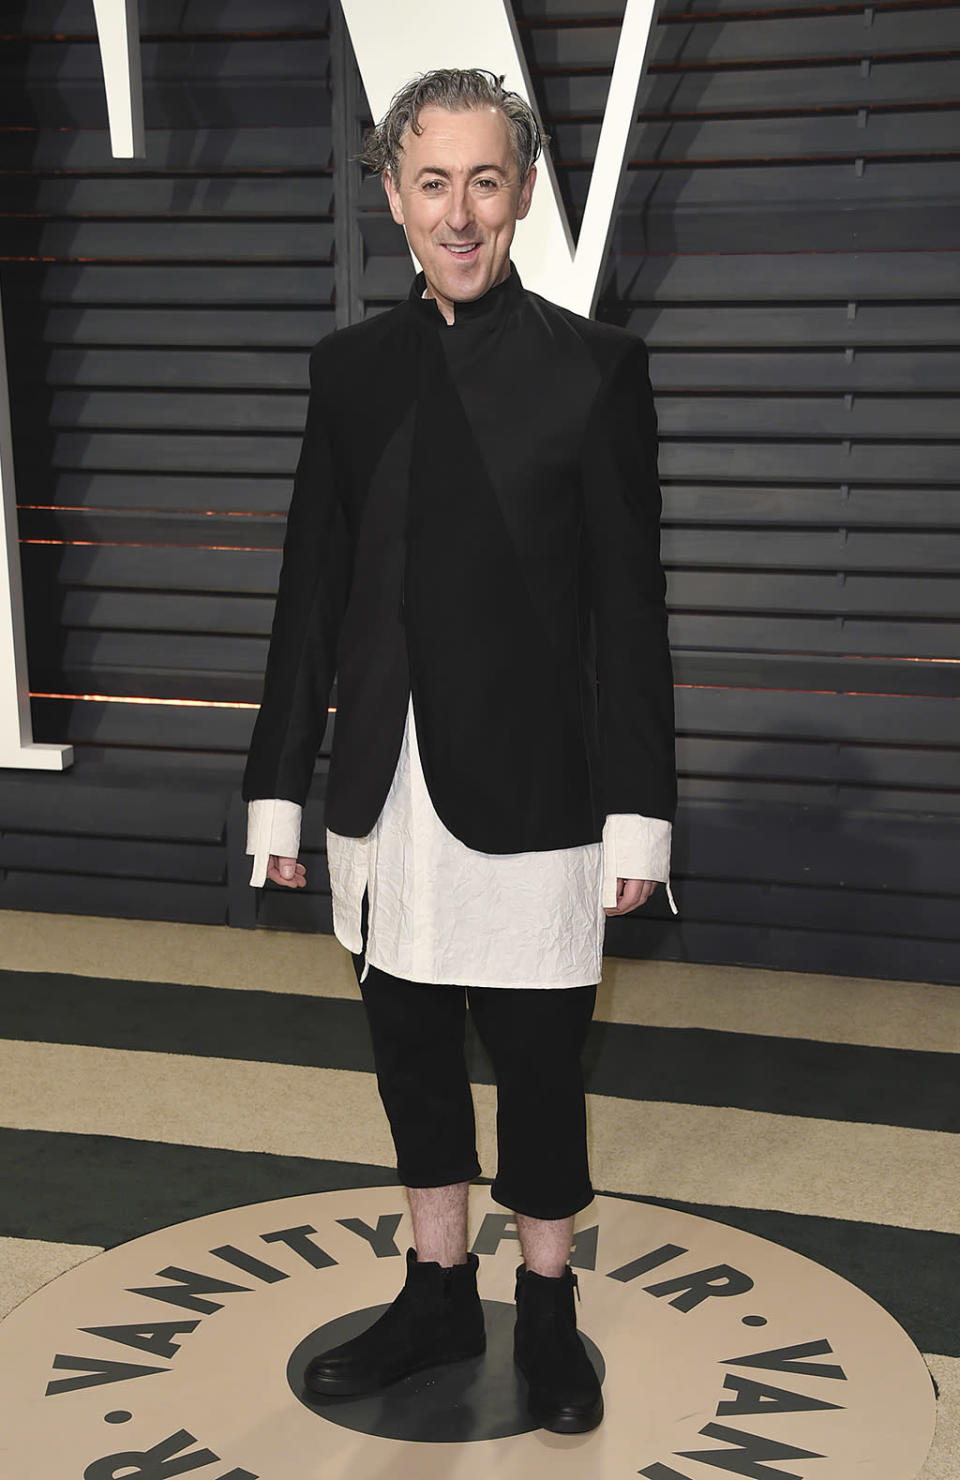 <p>Alan Cumming arrives at the Vanity Fair Oscar Party on Sunday, Feb. 26, 2017, in Beverly Hills, Calif. (Photo by Evan Agostini/Invision/AP) </p>